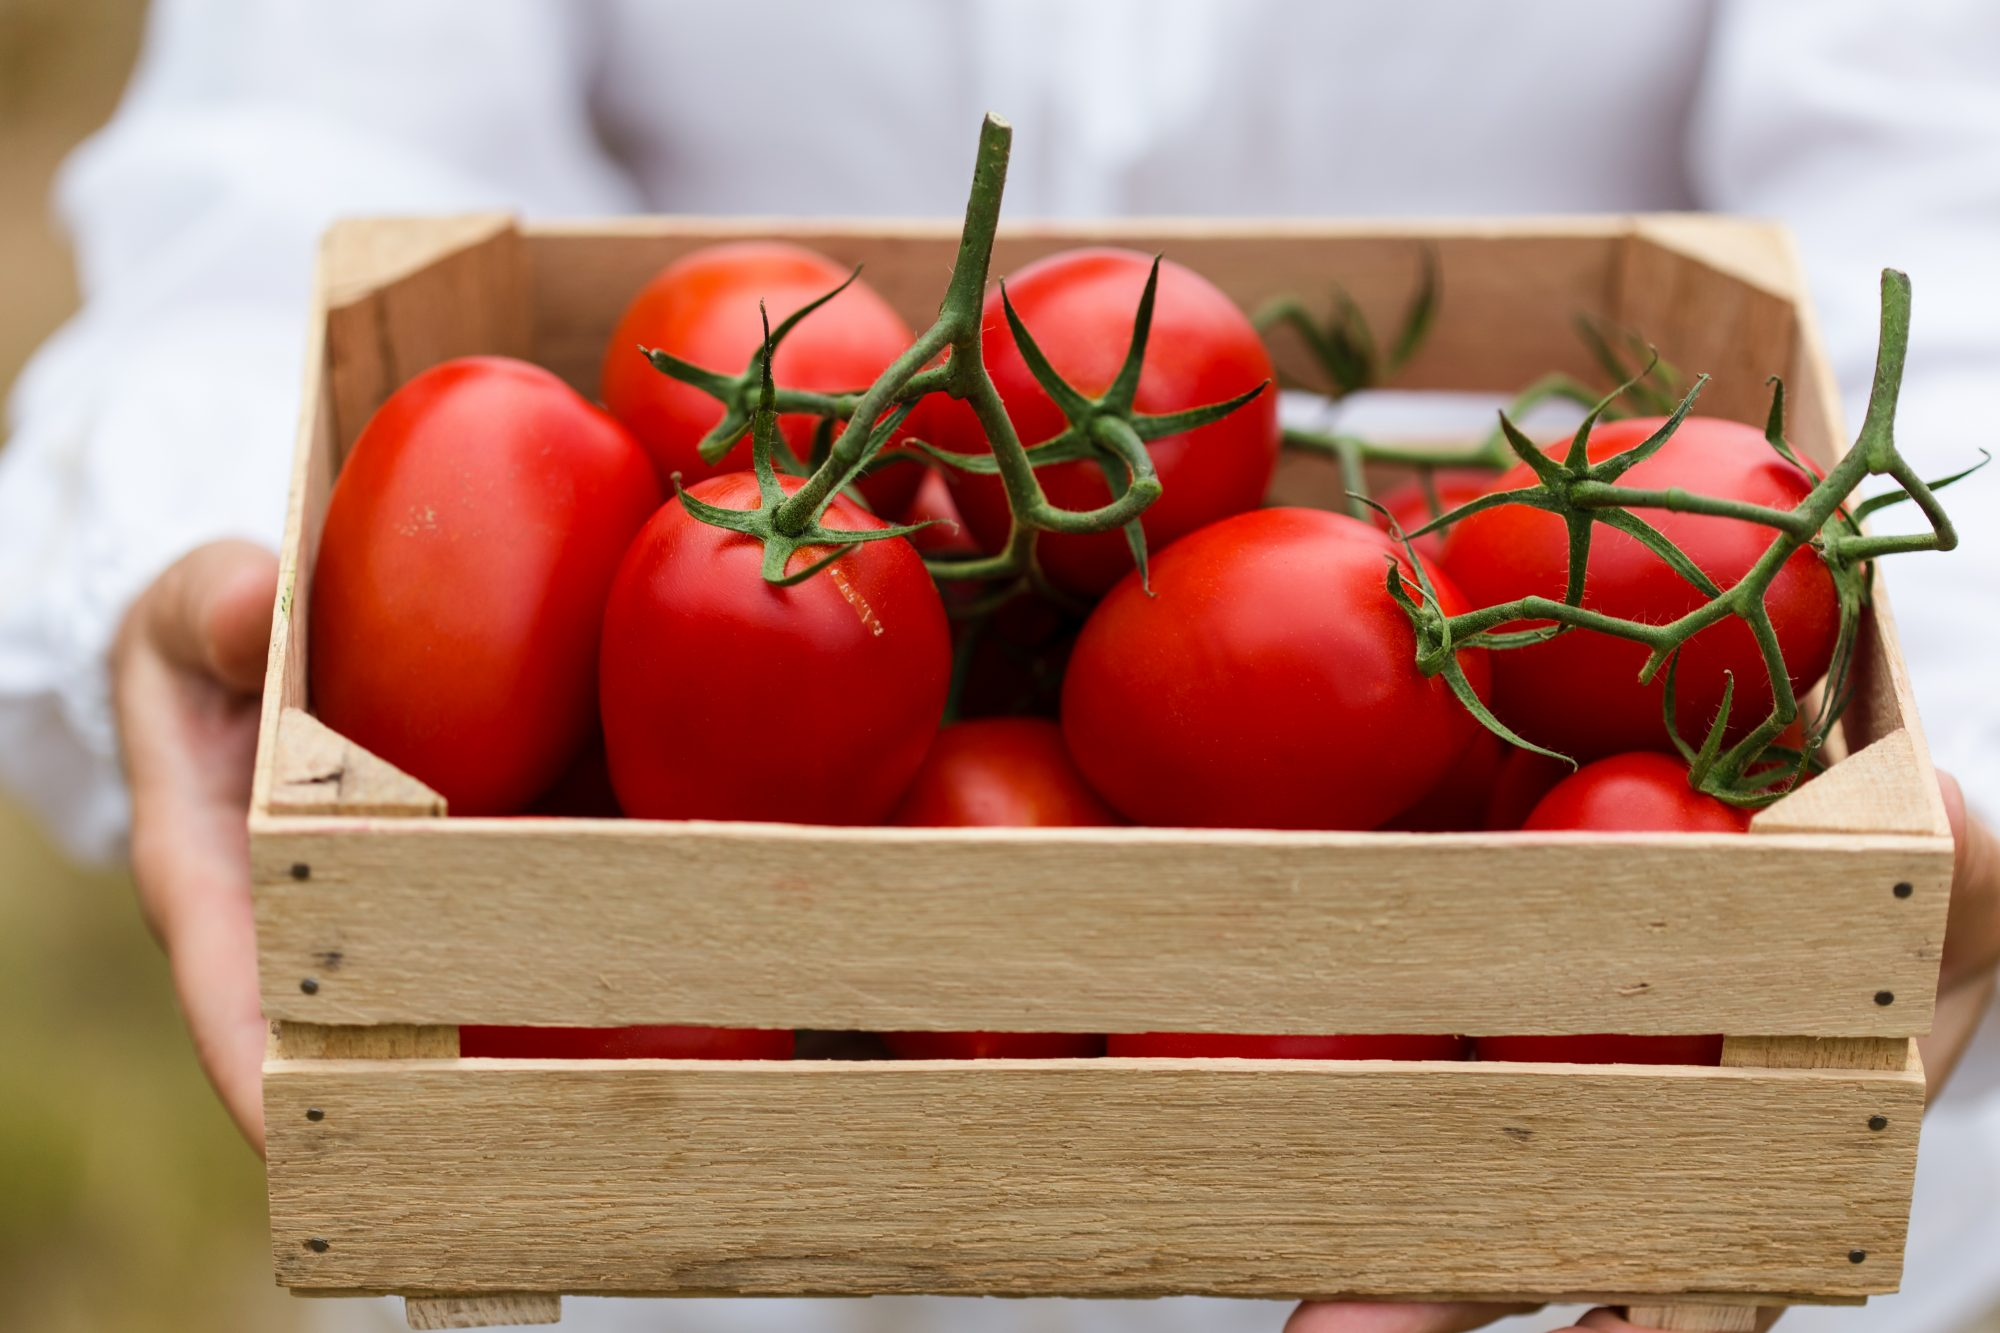 Tomatoes in box Getty 4/20/20